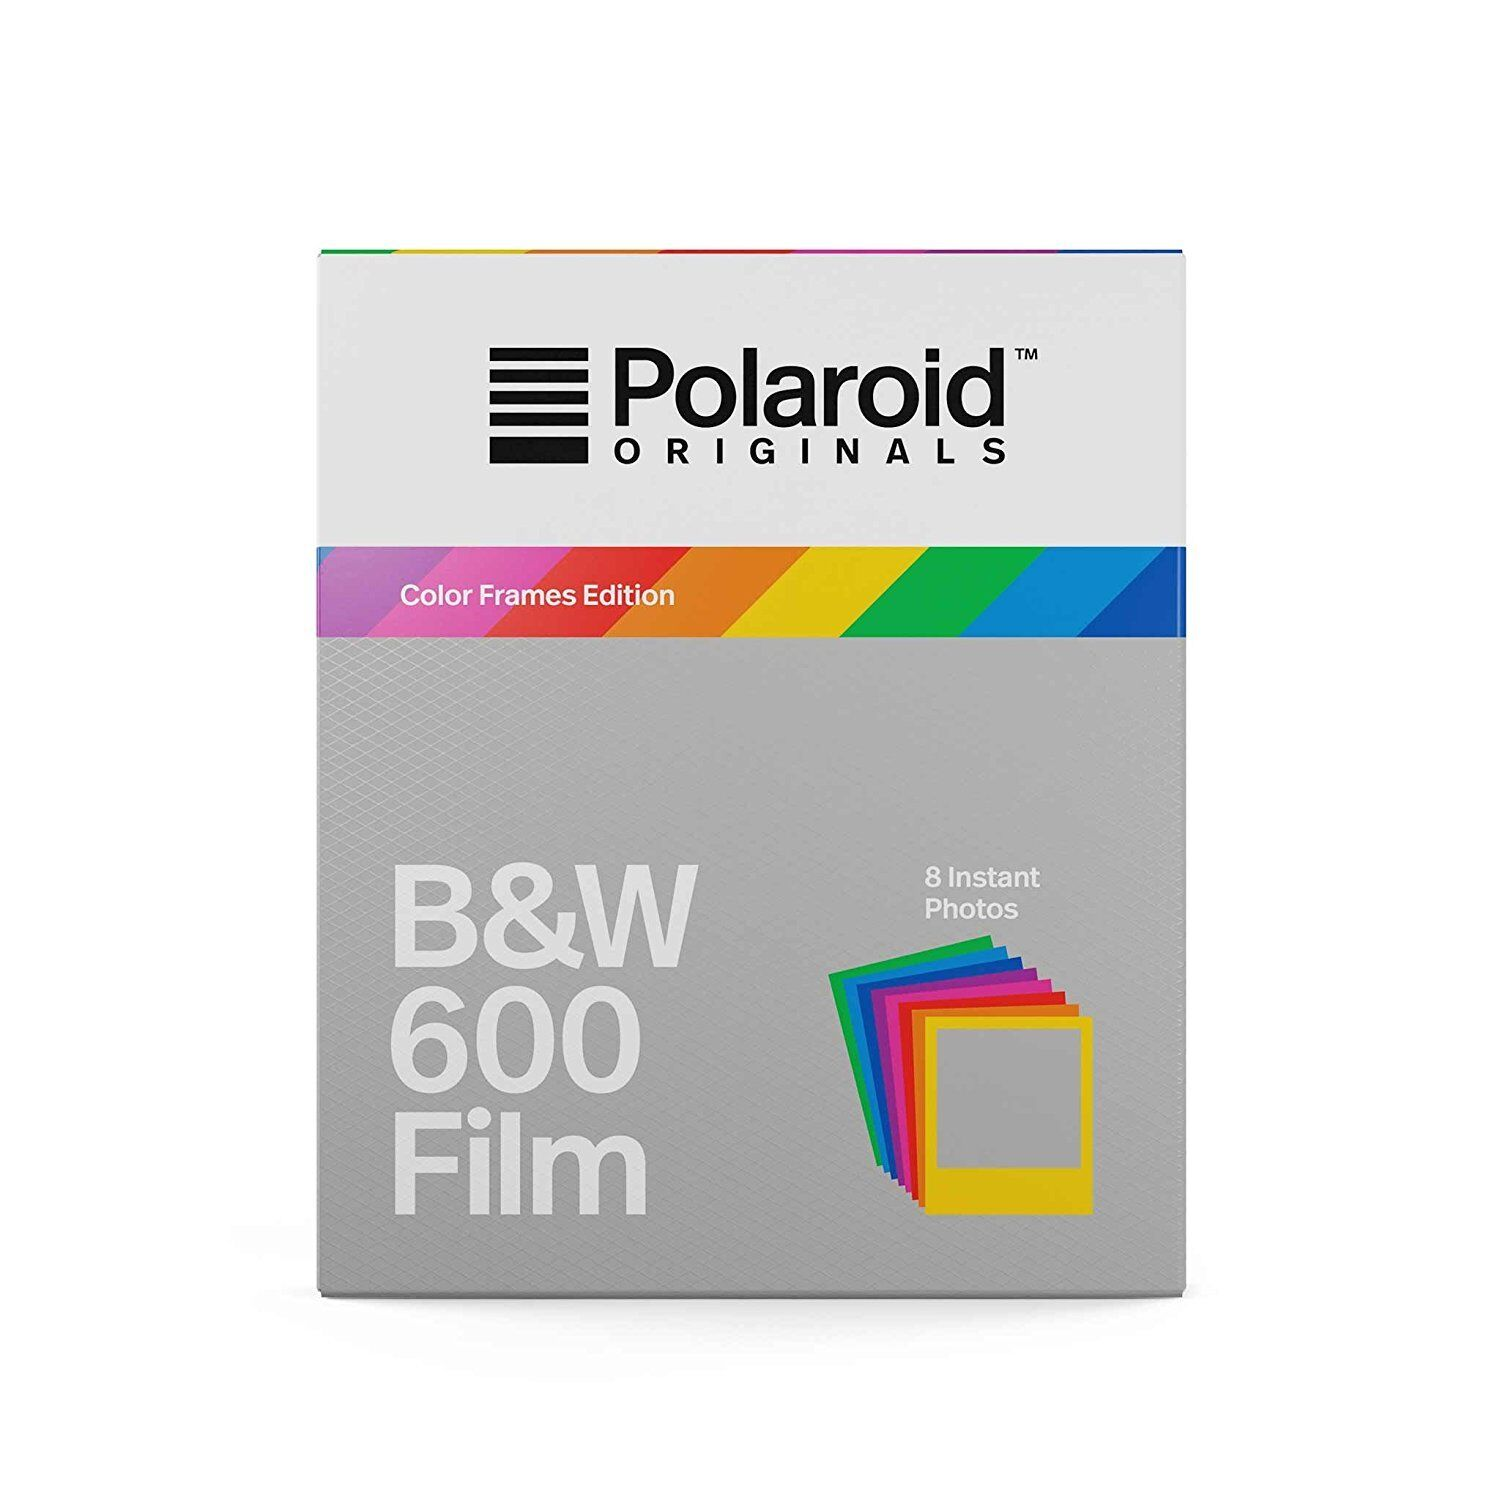 Купить Polaroid - Polaroid Originals B&W Film for 600 - Hard Color Frames